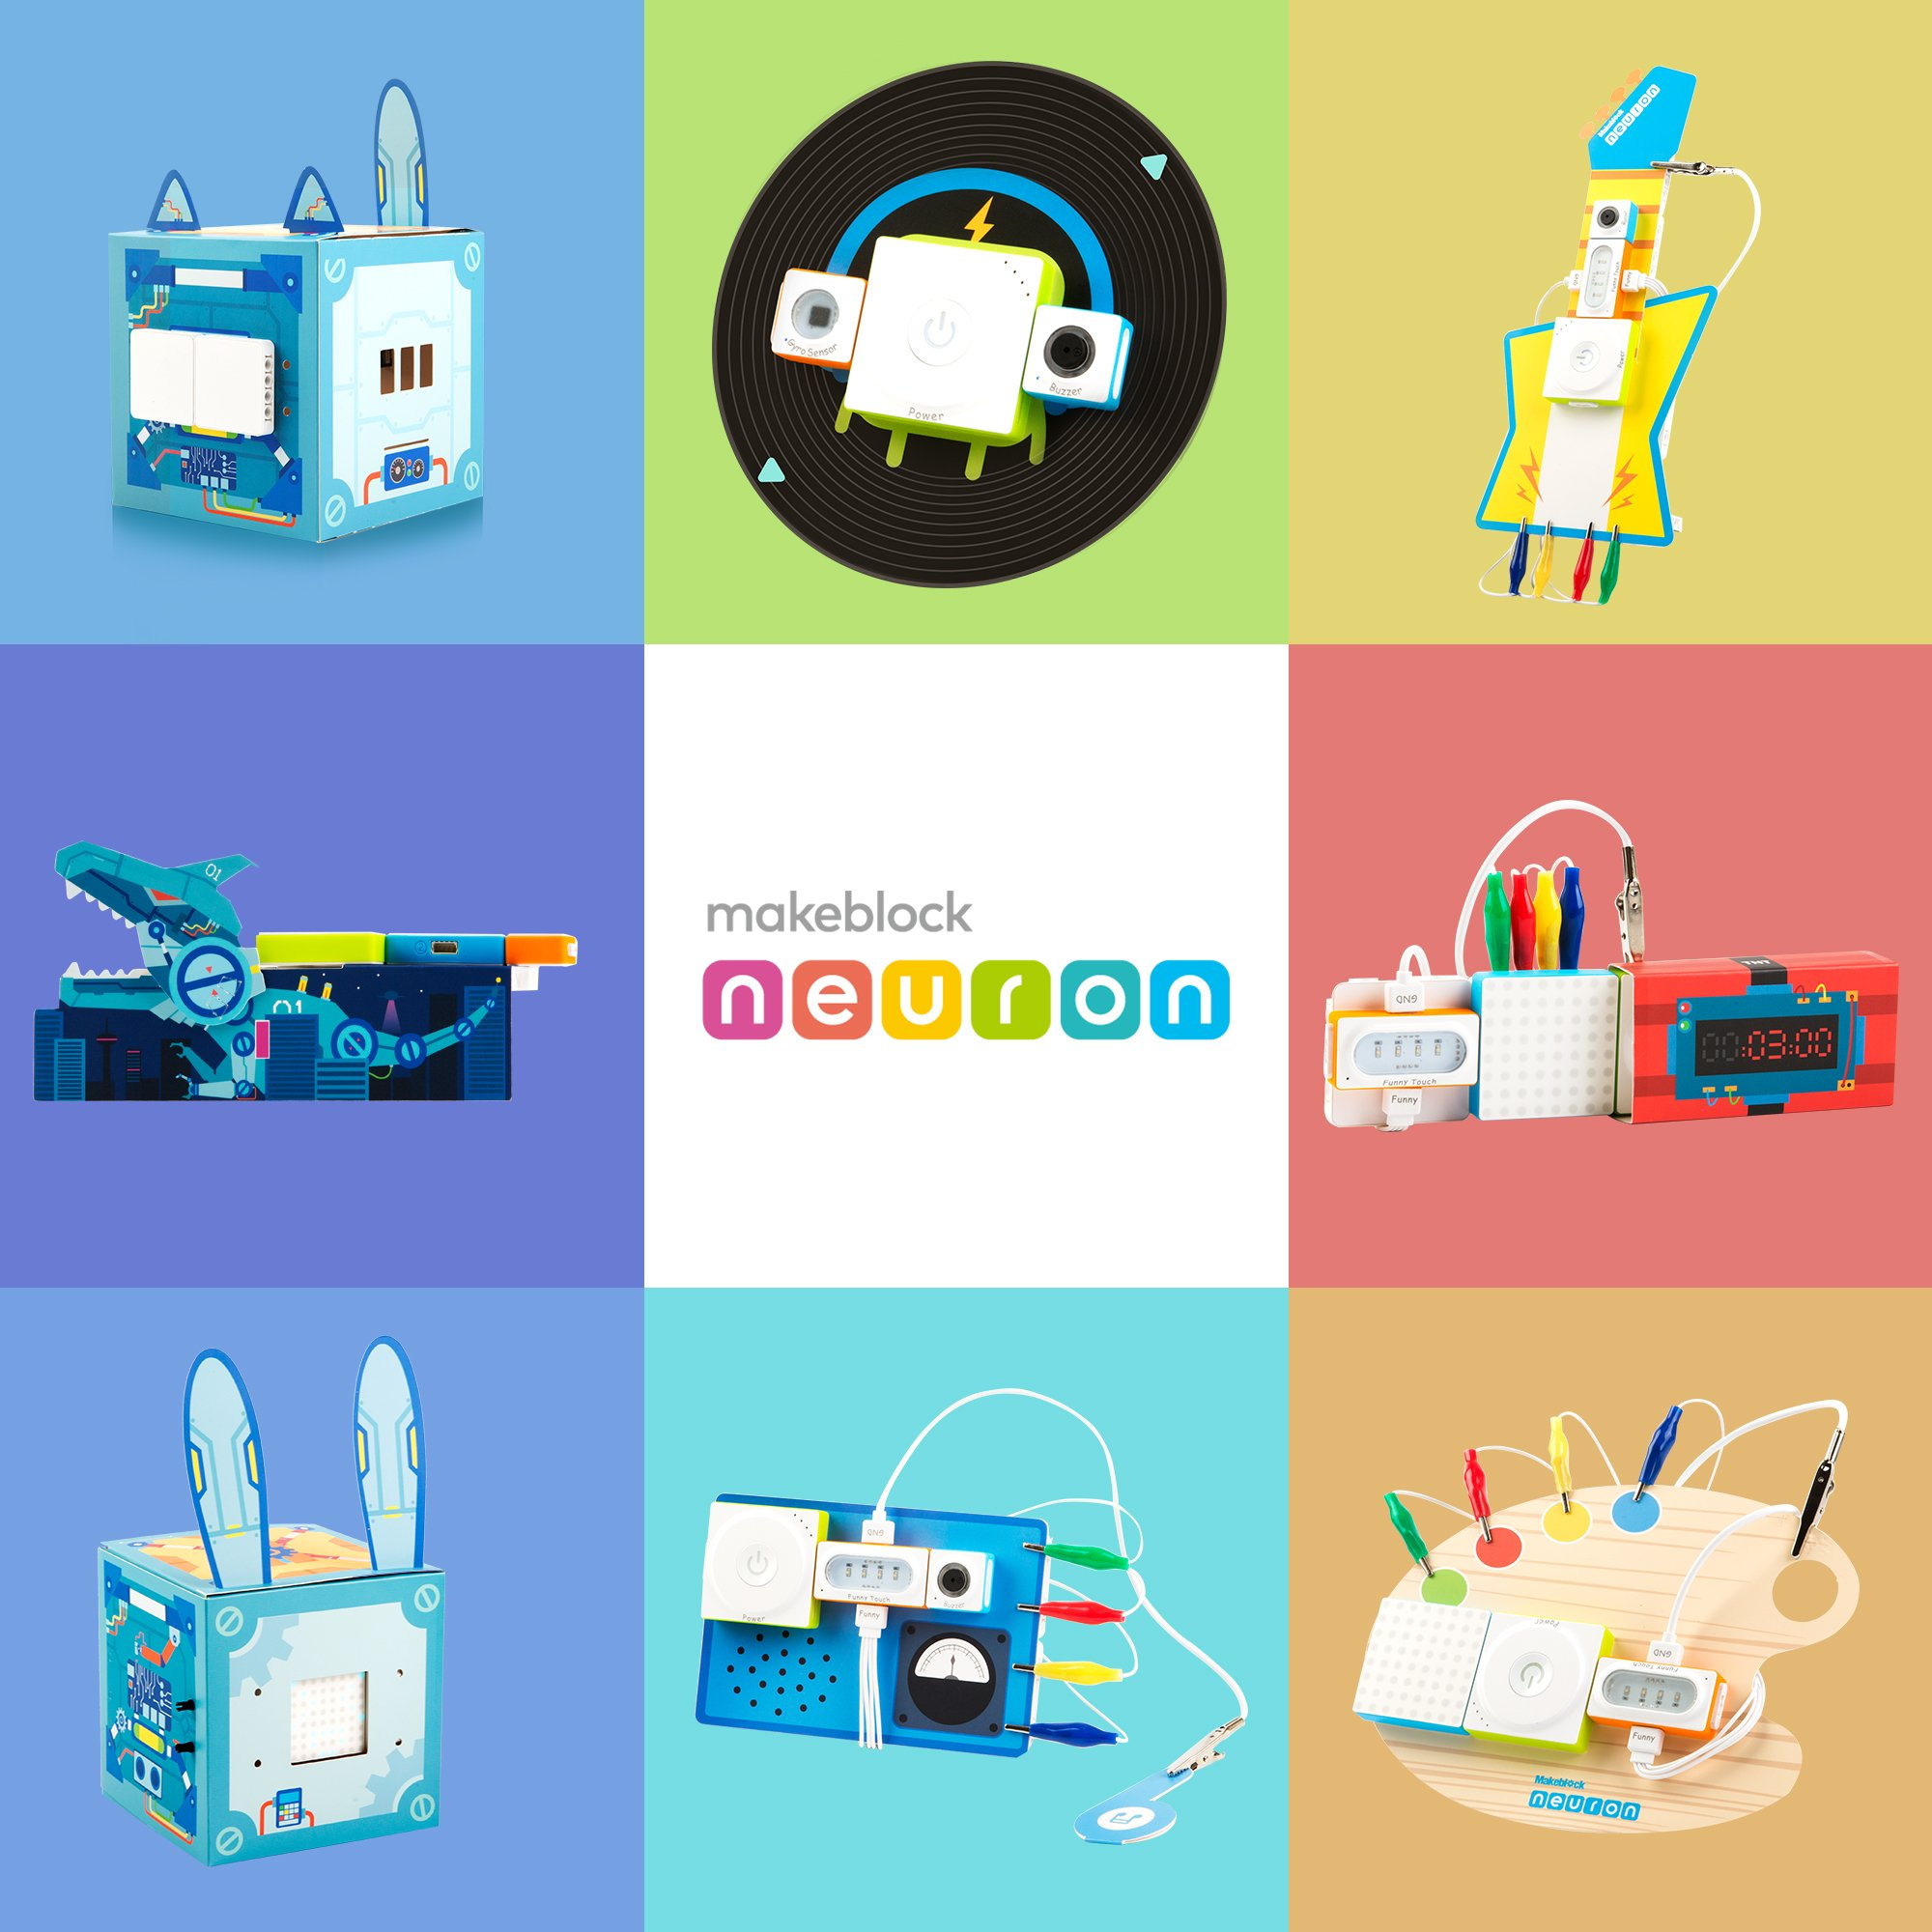 Makeblock Neuron Inventor Kit, STEAM Education, Graphical Programming, Magnetic Pogo Pins for 6 Year & up Kids+ with 6 Basic Blocks, Over 10 Kinds of Funny Robots, Like Rabbit,Dashing Raptor by Makeblock (Image #4)